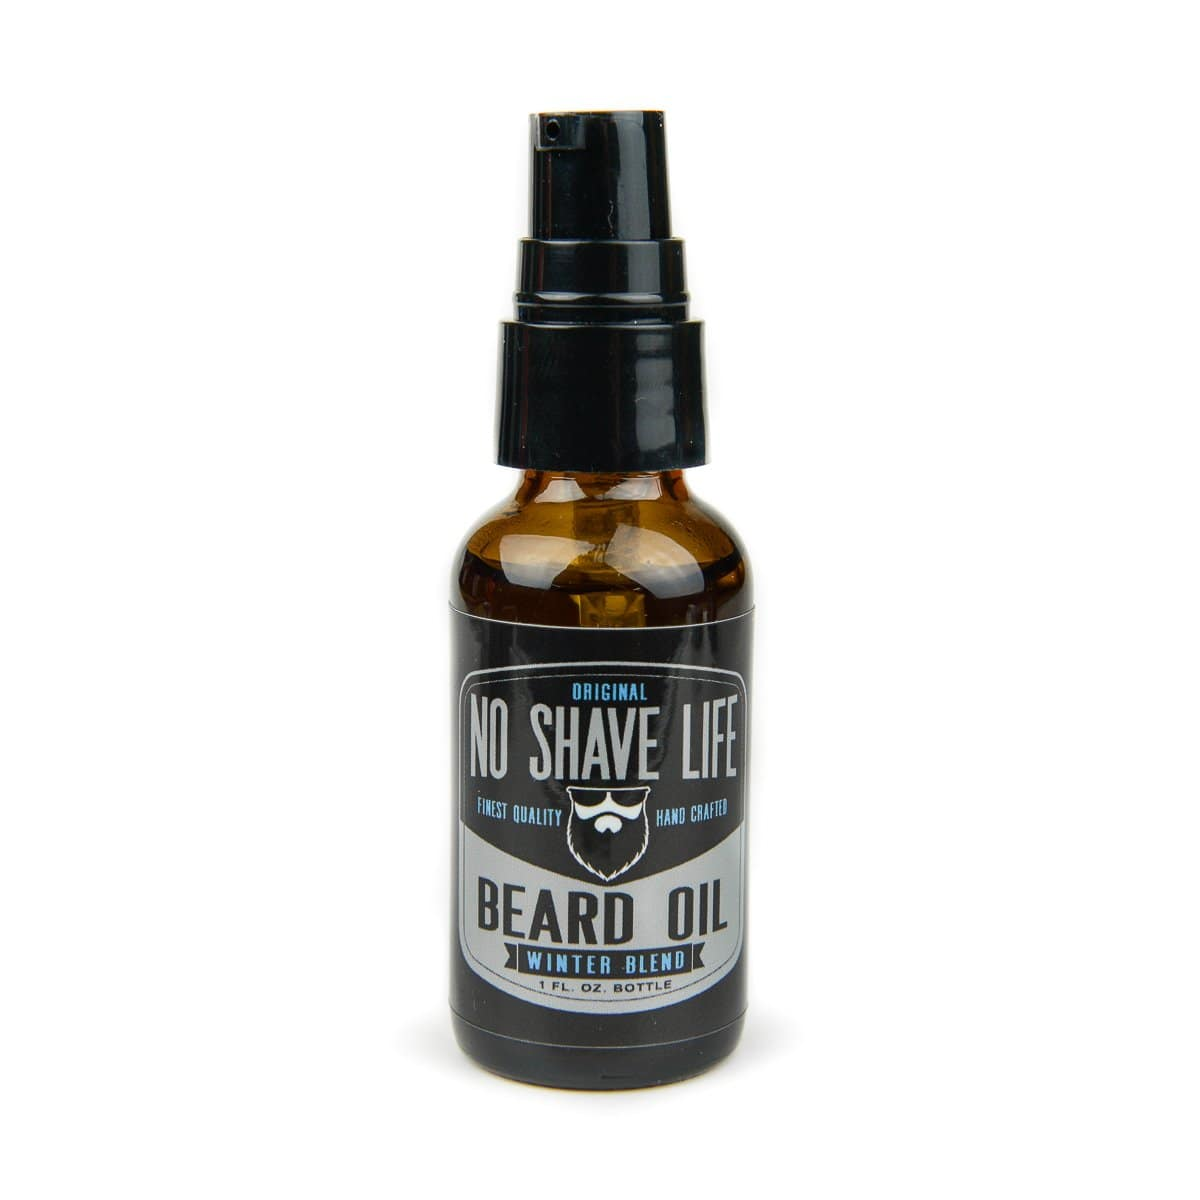 Winter Blend Beard Oil